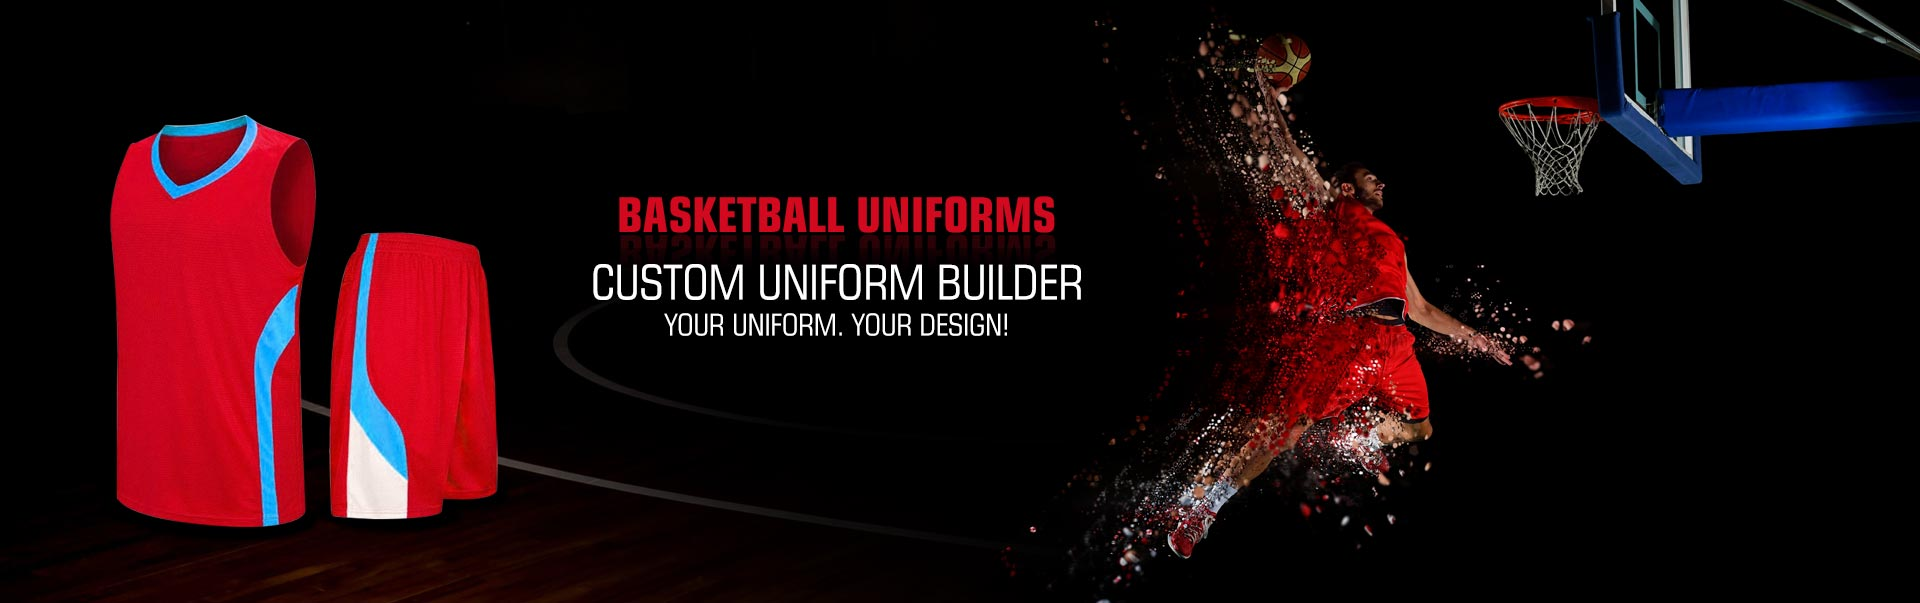 Basketball Uniforms Wholesaler, Suppliers in Iraq